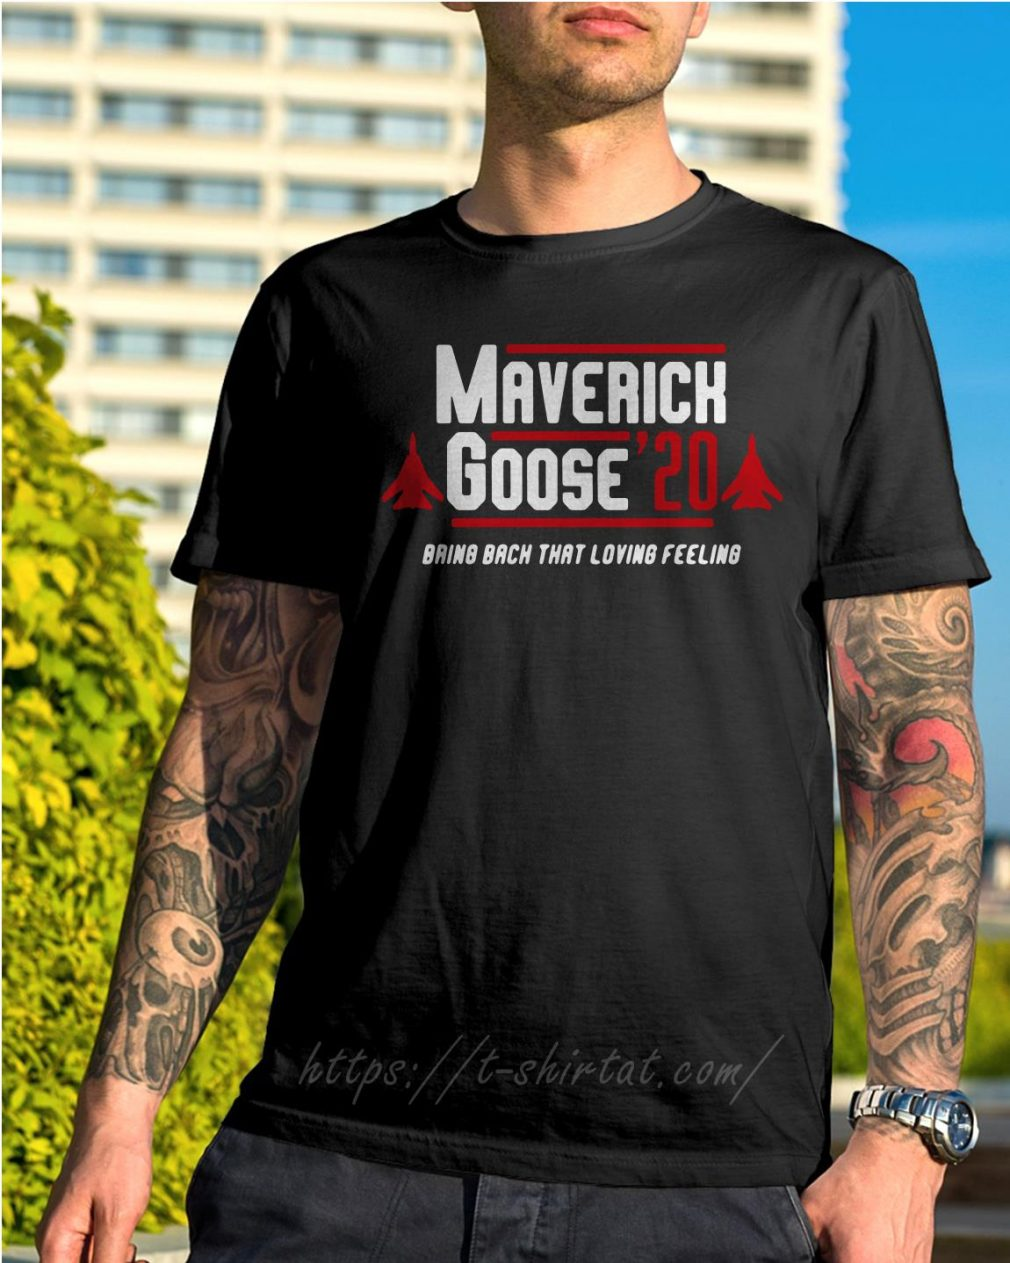 Maverick Goose' 20 bring back that loving feeling shirt